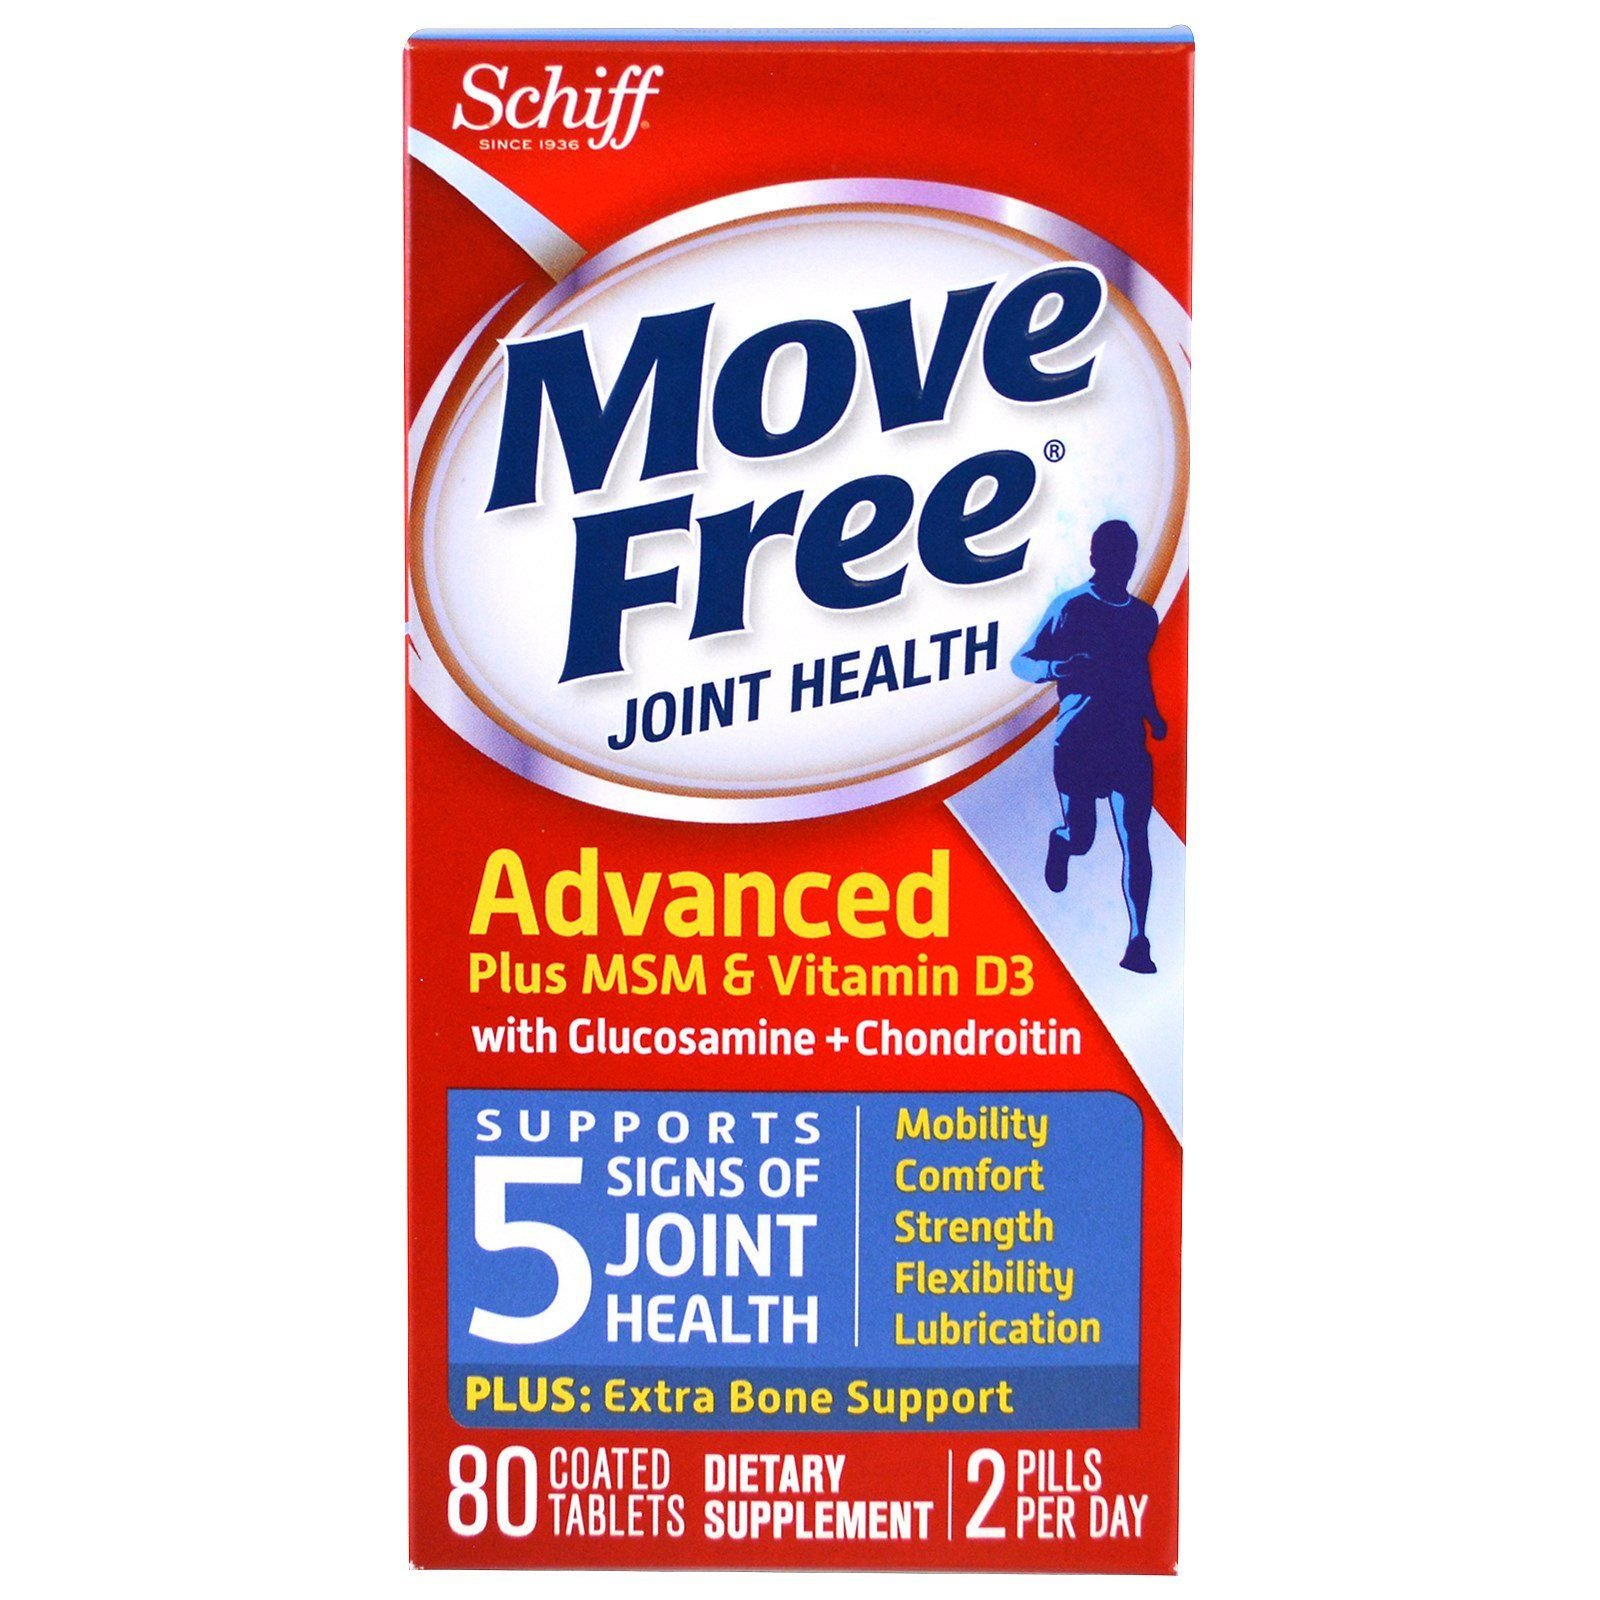 Move Free Advanced Plus MSM and Vitamin D3, 80 tablets - Joint Health Supplement with Glucosamine and Chondroitin (Pack of 3)